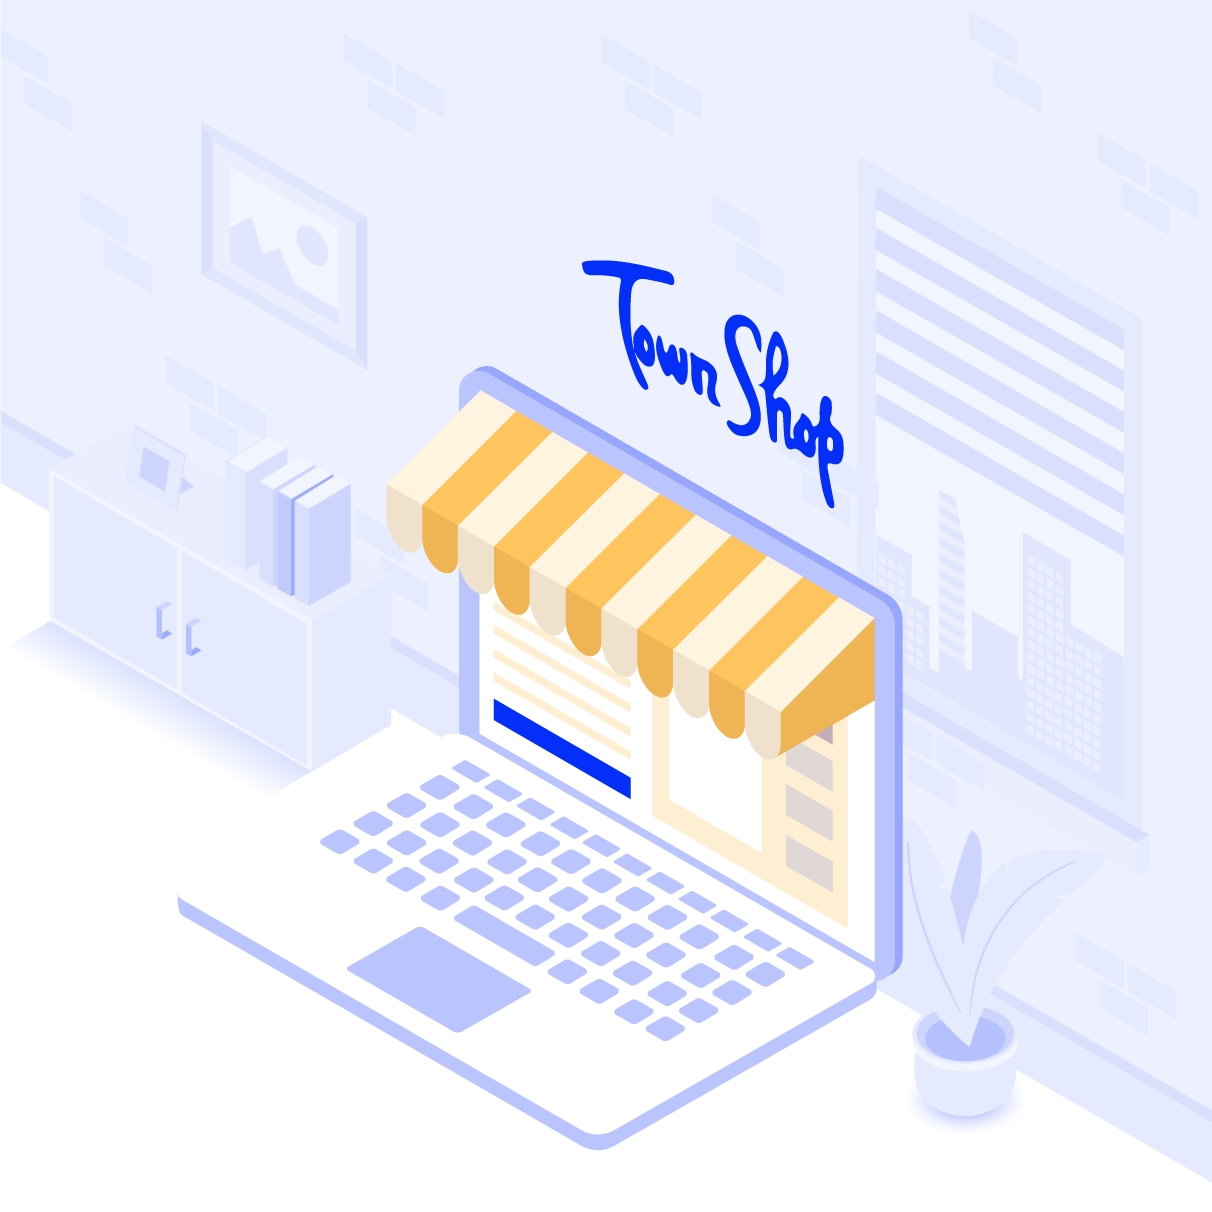 Case study of Townshop - Lingerie store